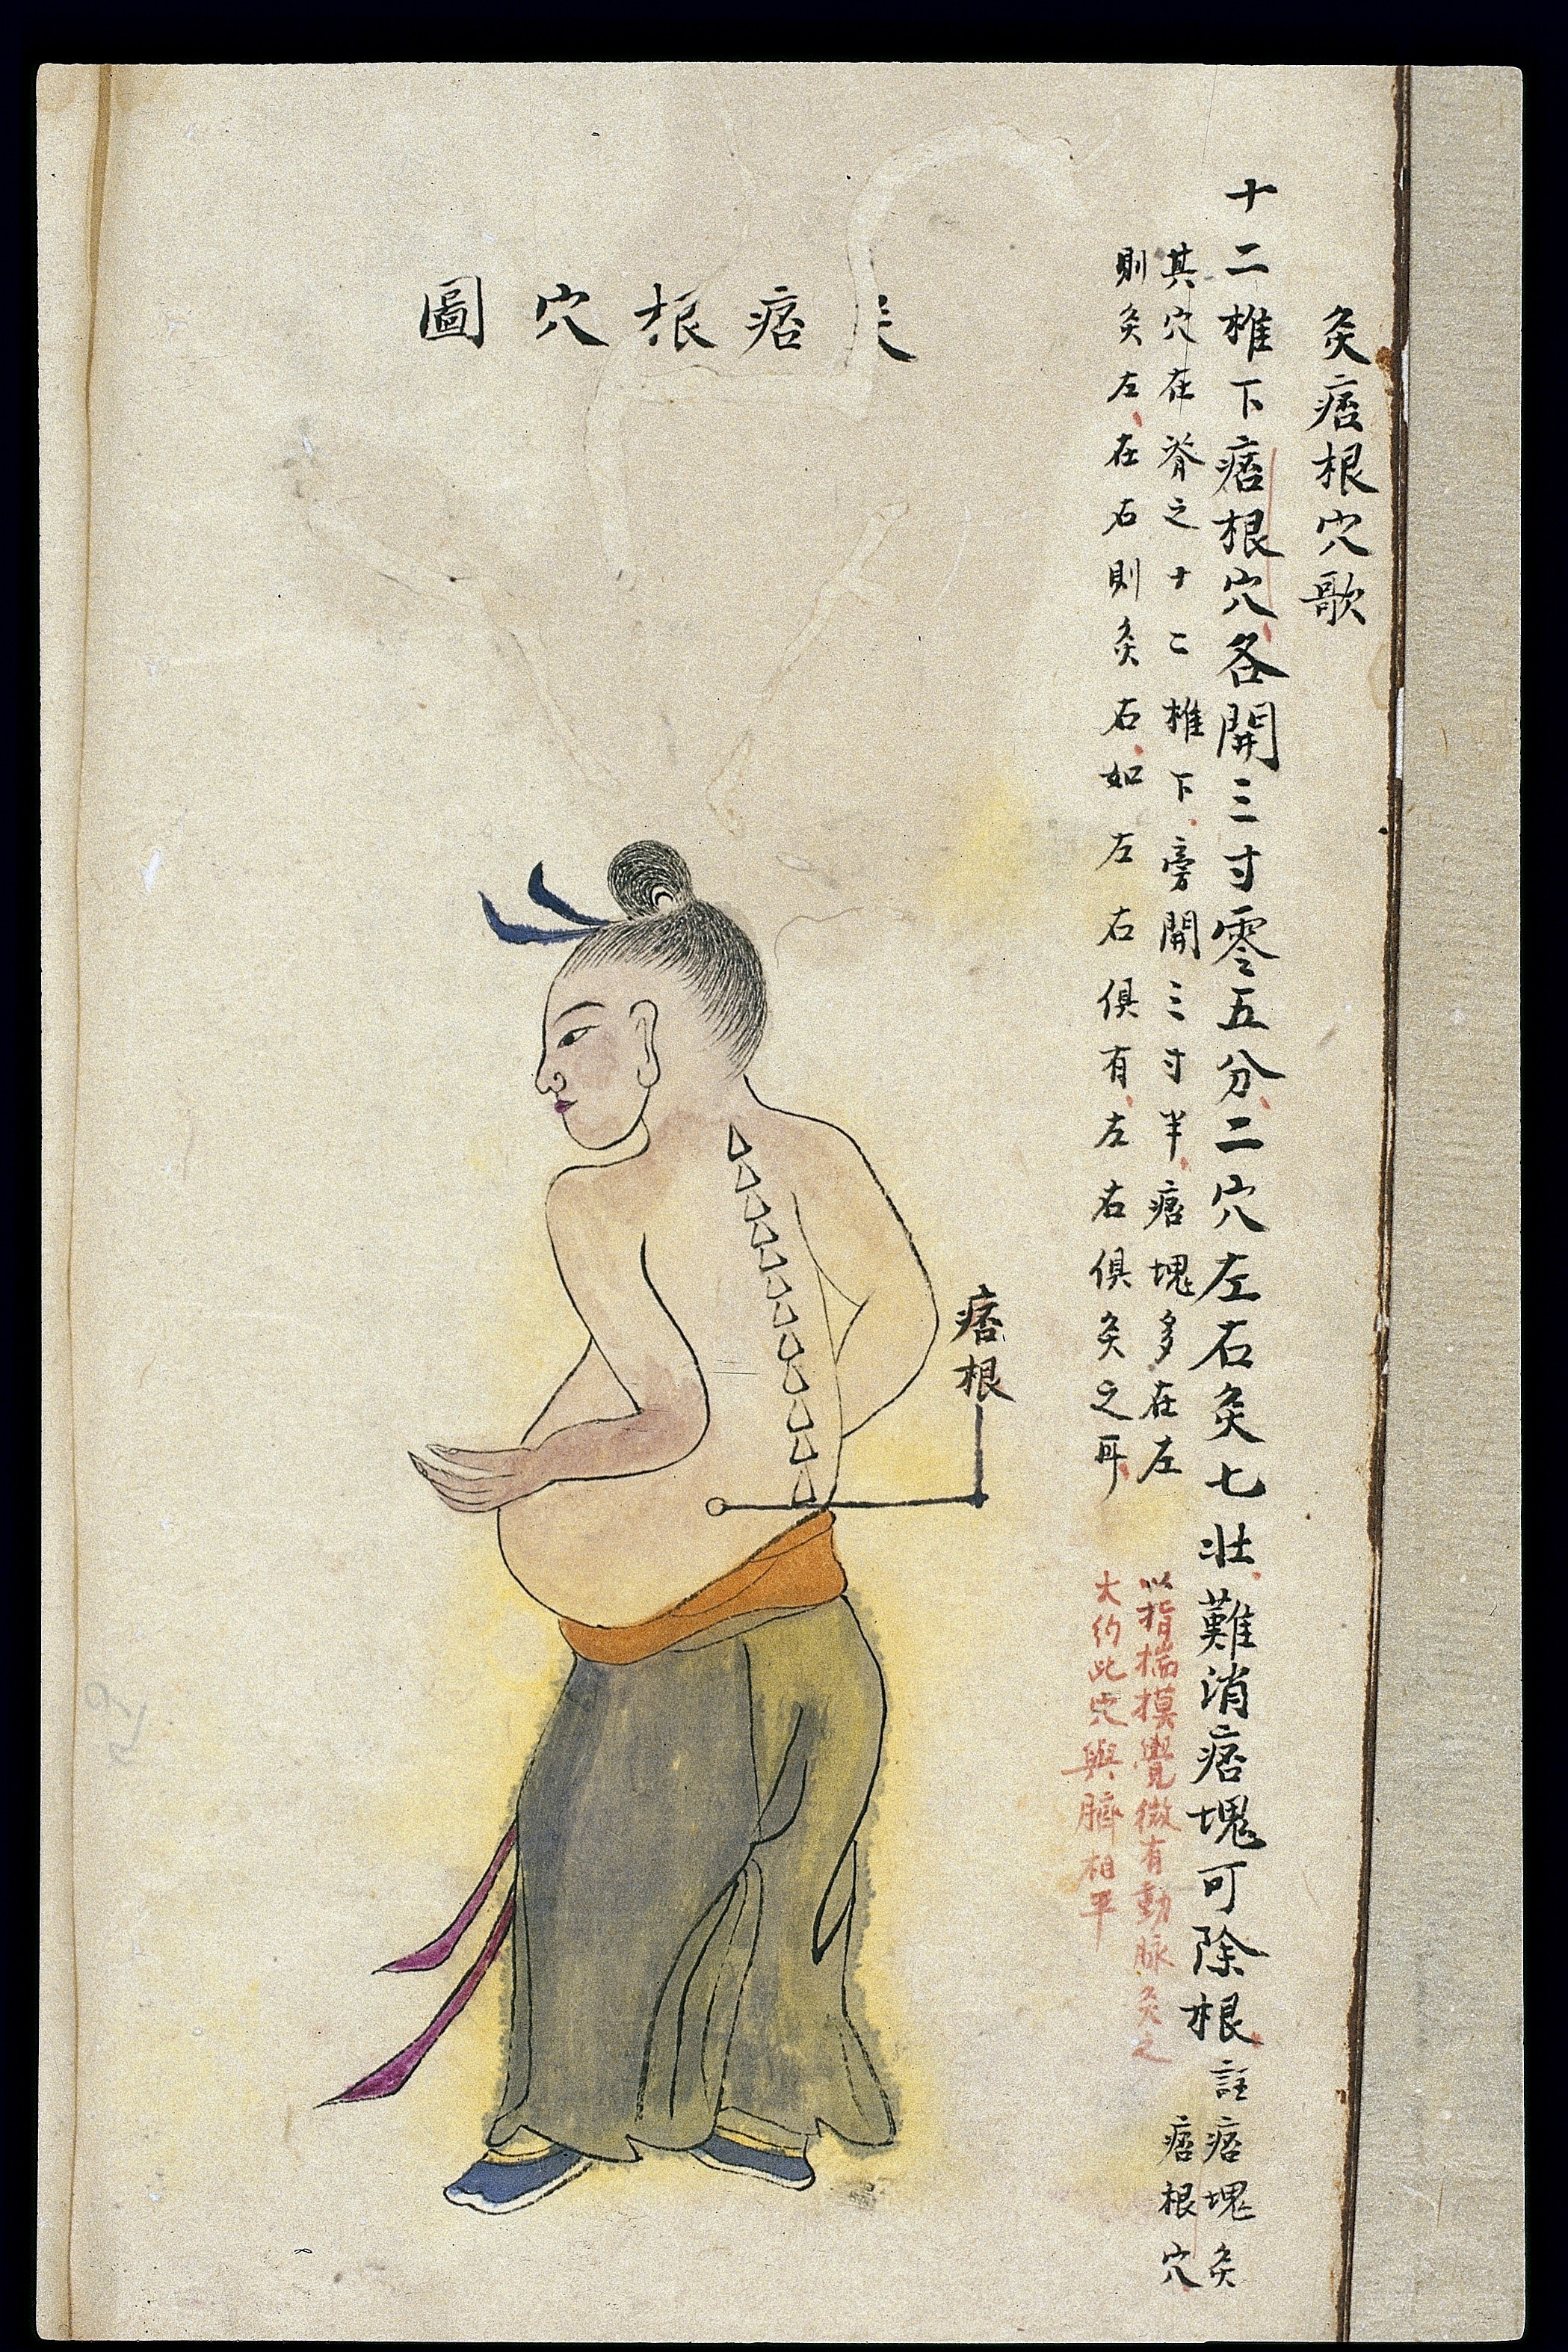 Trigger Points Chart: C19 Chinese MS moxibustion point chart; Pigen Wellcome ,Chart